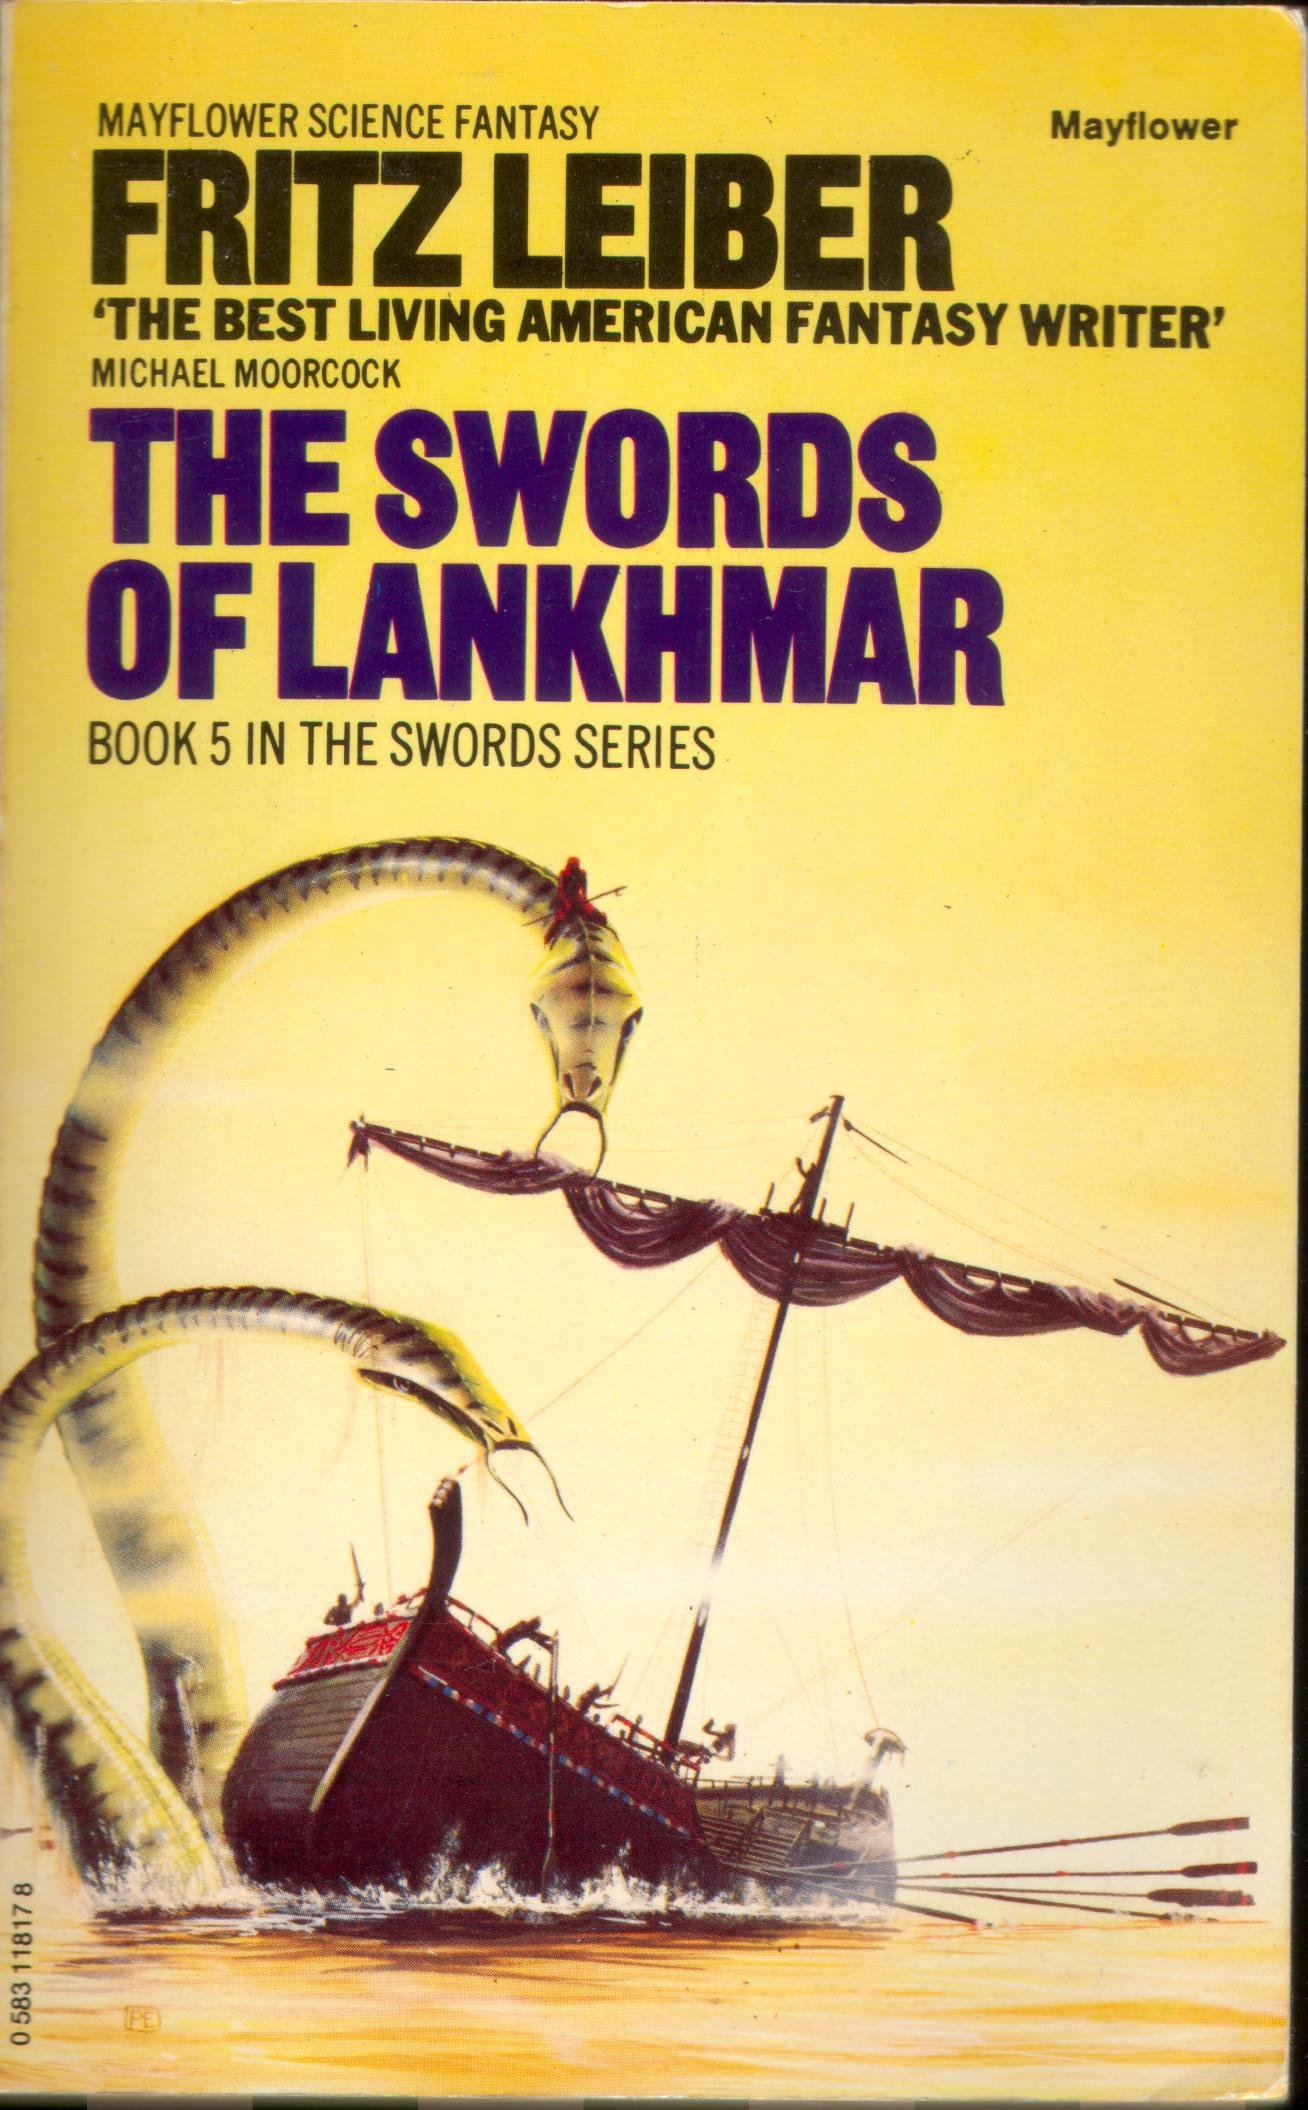 Image result for The swords of lankhmar 1970